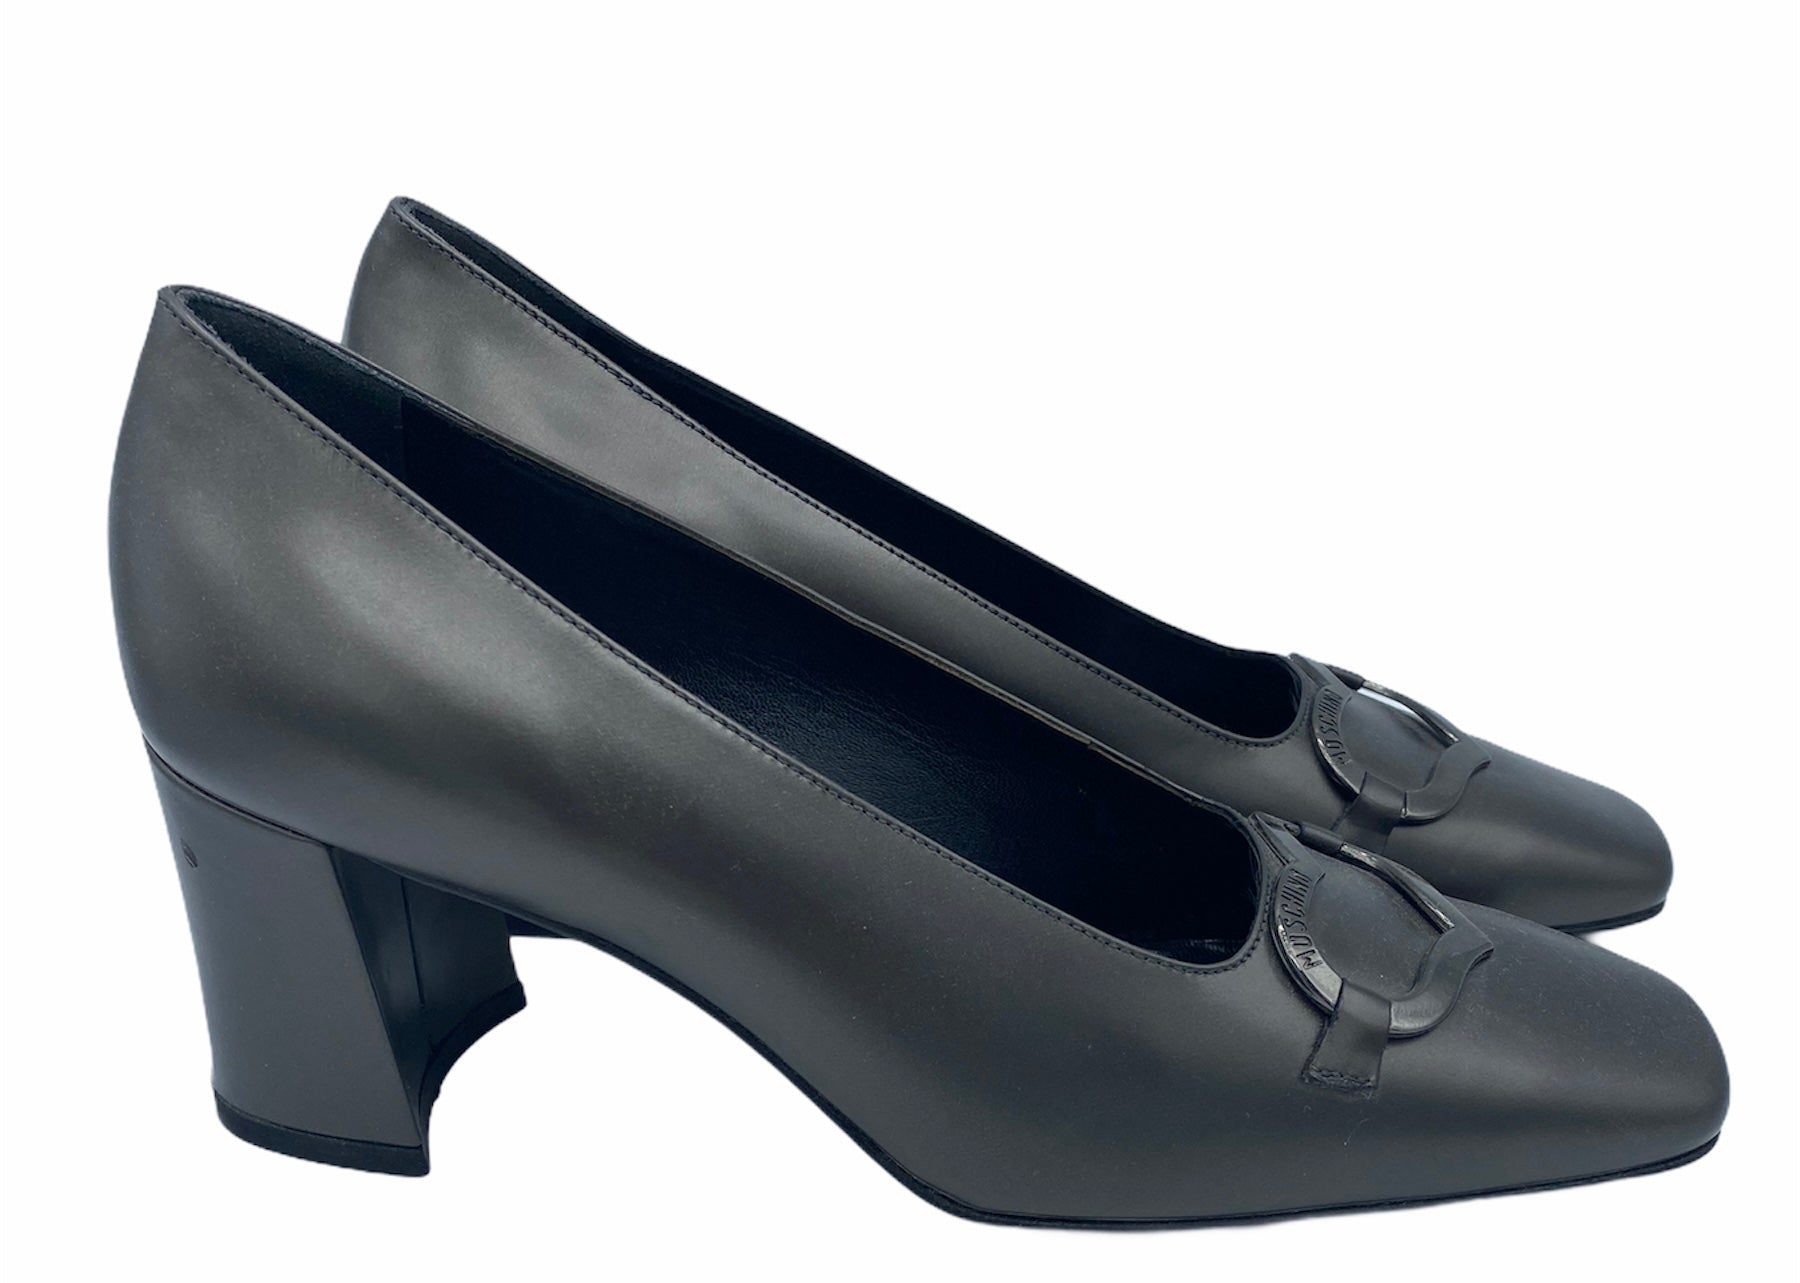 Moschino 90s Grey Pilgrim Pumps With Chrome Heart SIDE 2 of 4